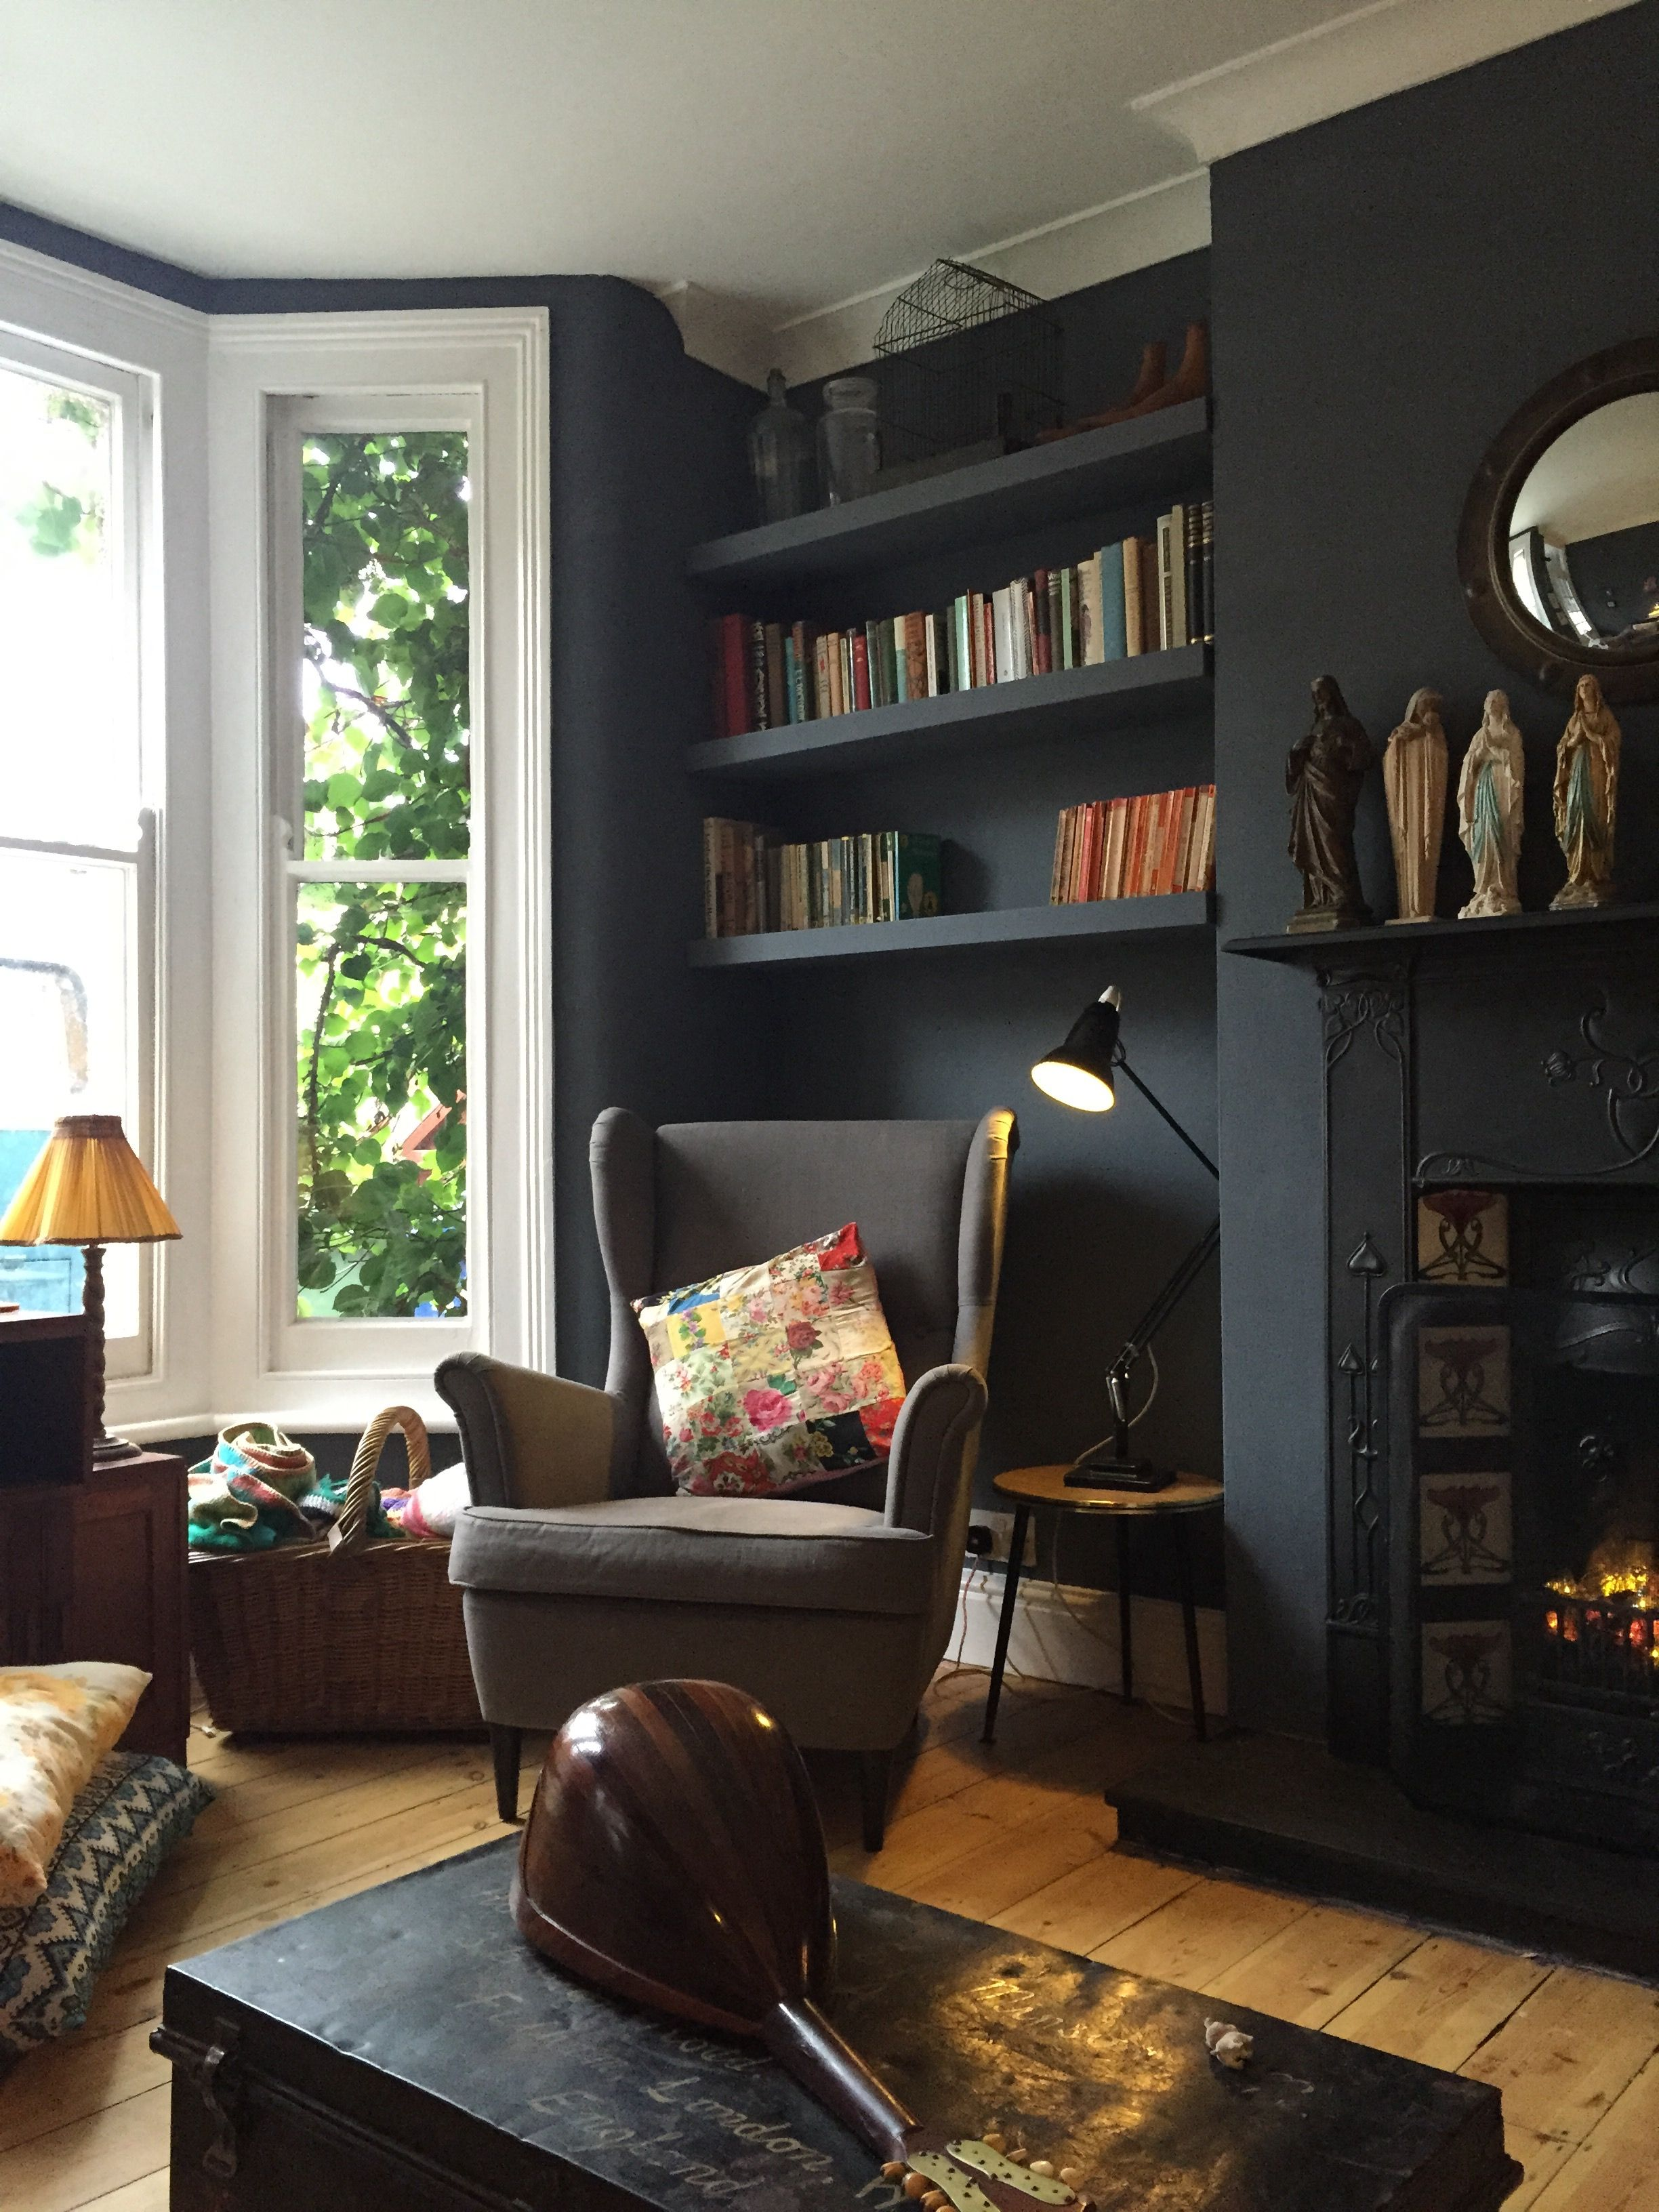 Kitchen Sitting Rooms Designs: Victorian Living Room, Sitting